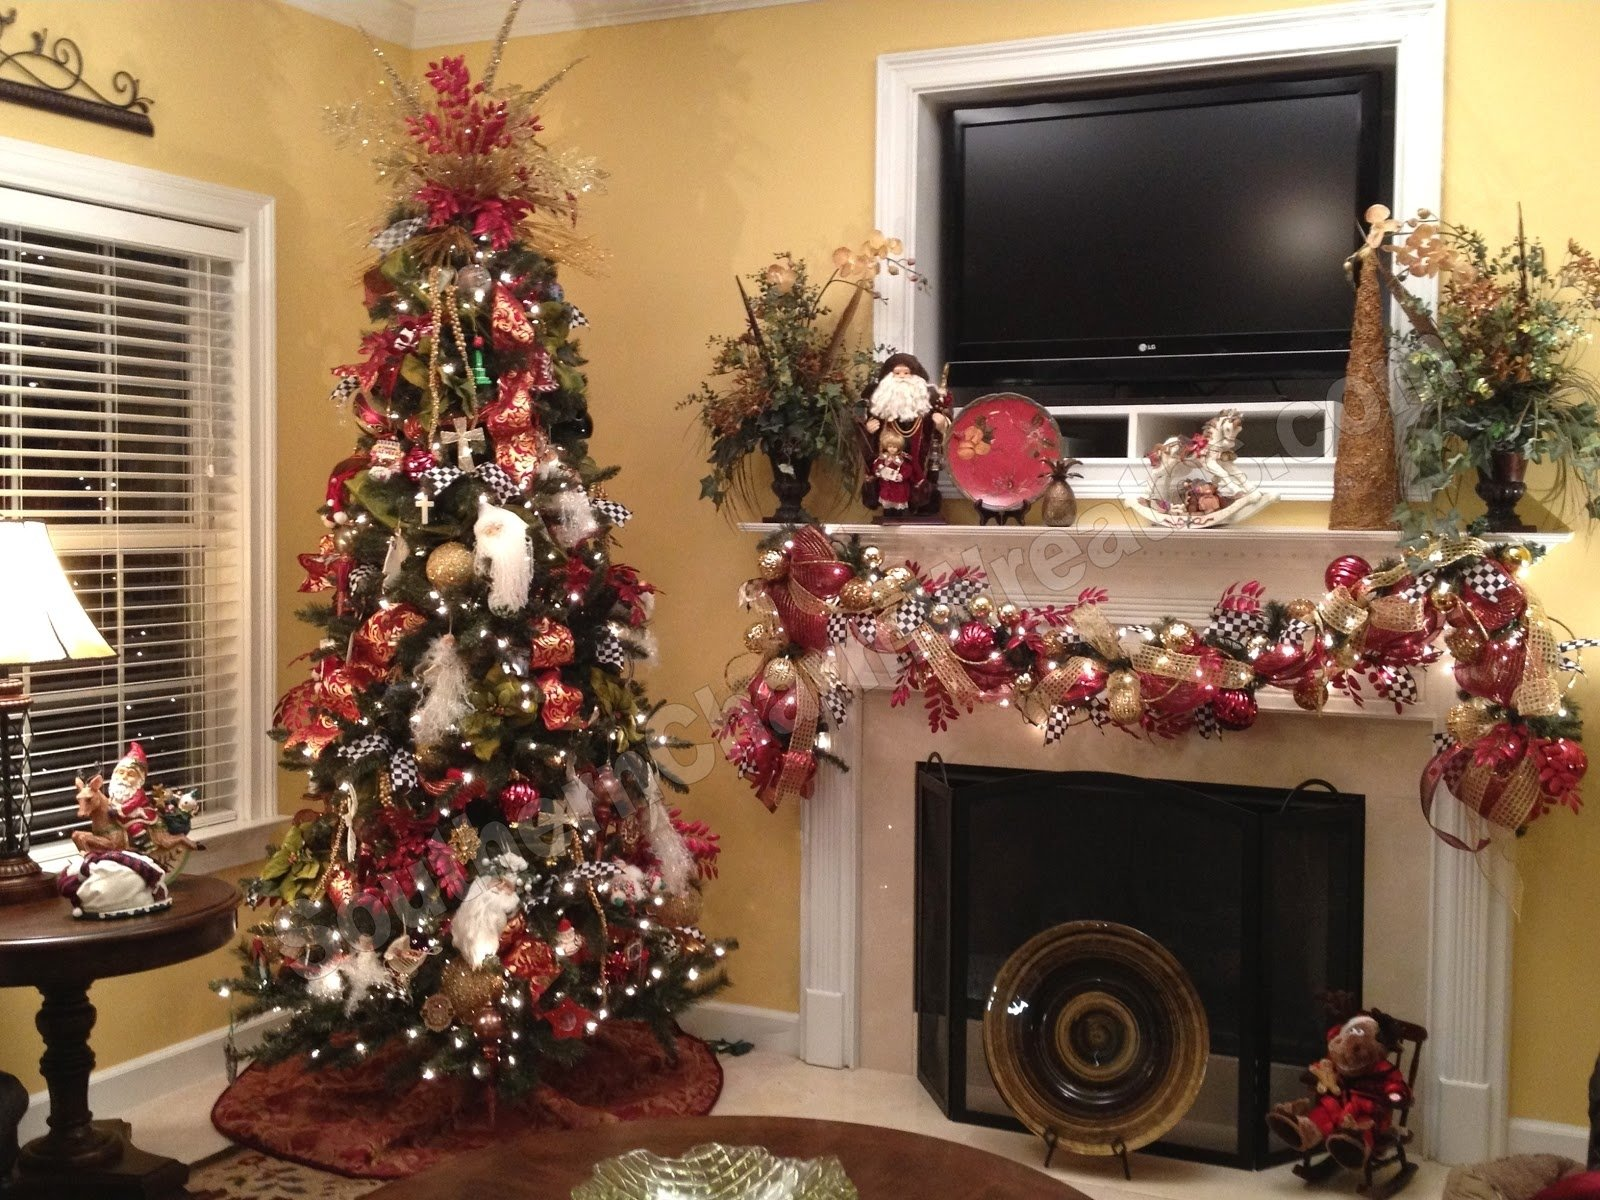 10 Fabulous Decorating With Mesh Ribbon Ideas trees decorated ribbon christmas house decorations ideas home dma 2021